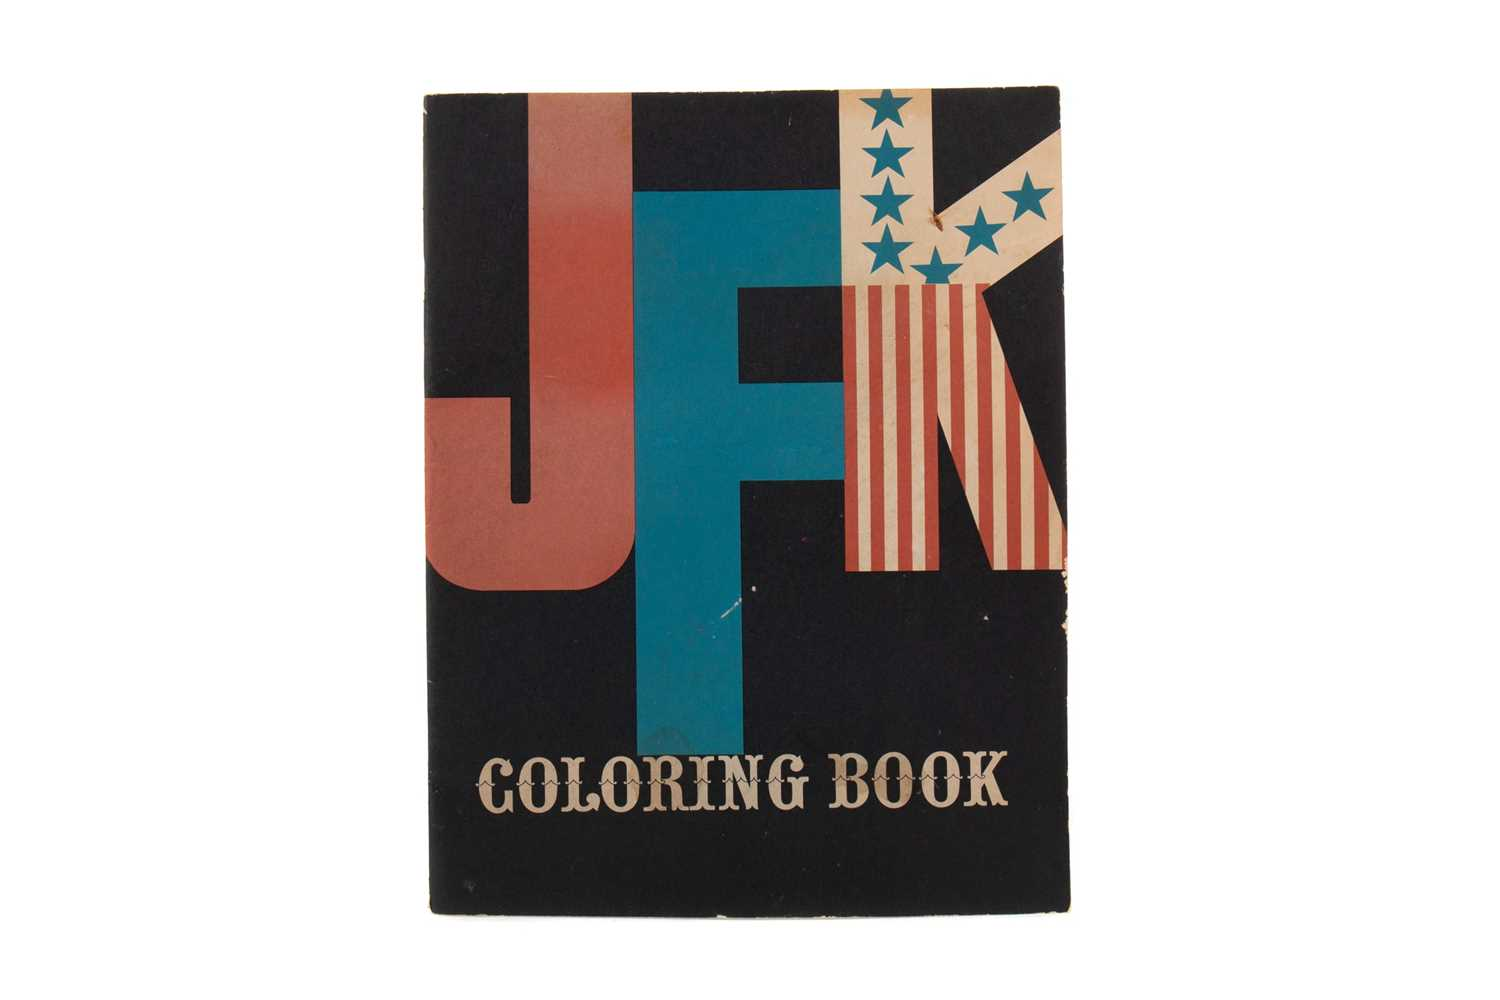 Lot 745 - THE J. F. K COLOURING BOOK